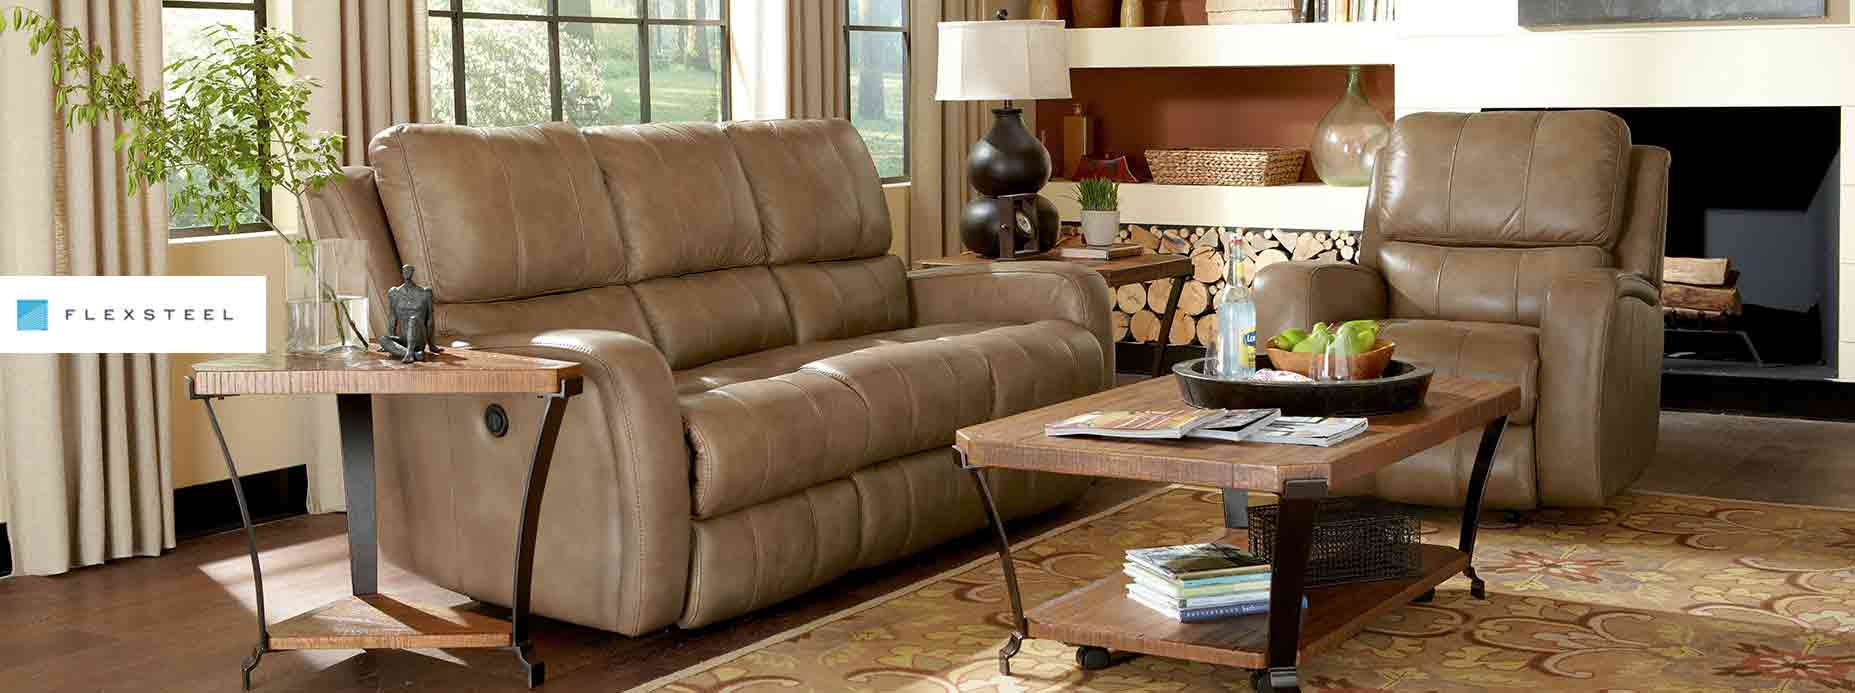 North carolina discount furniture stores offer brand name for Furniture north carolina